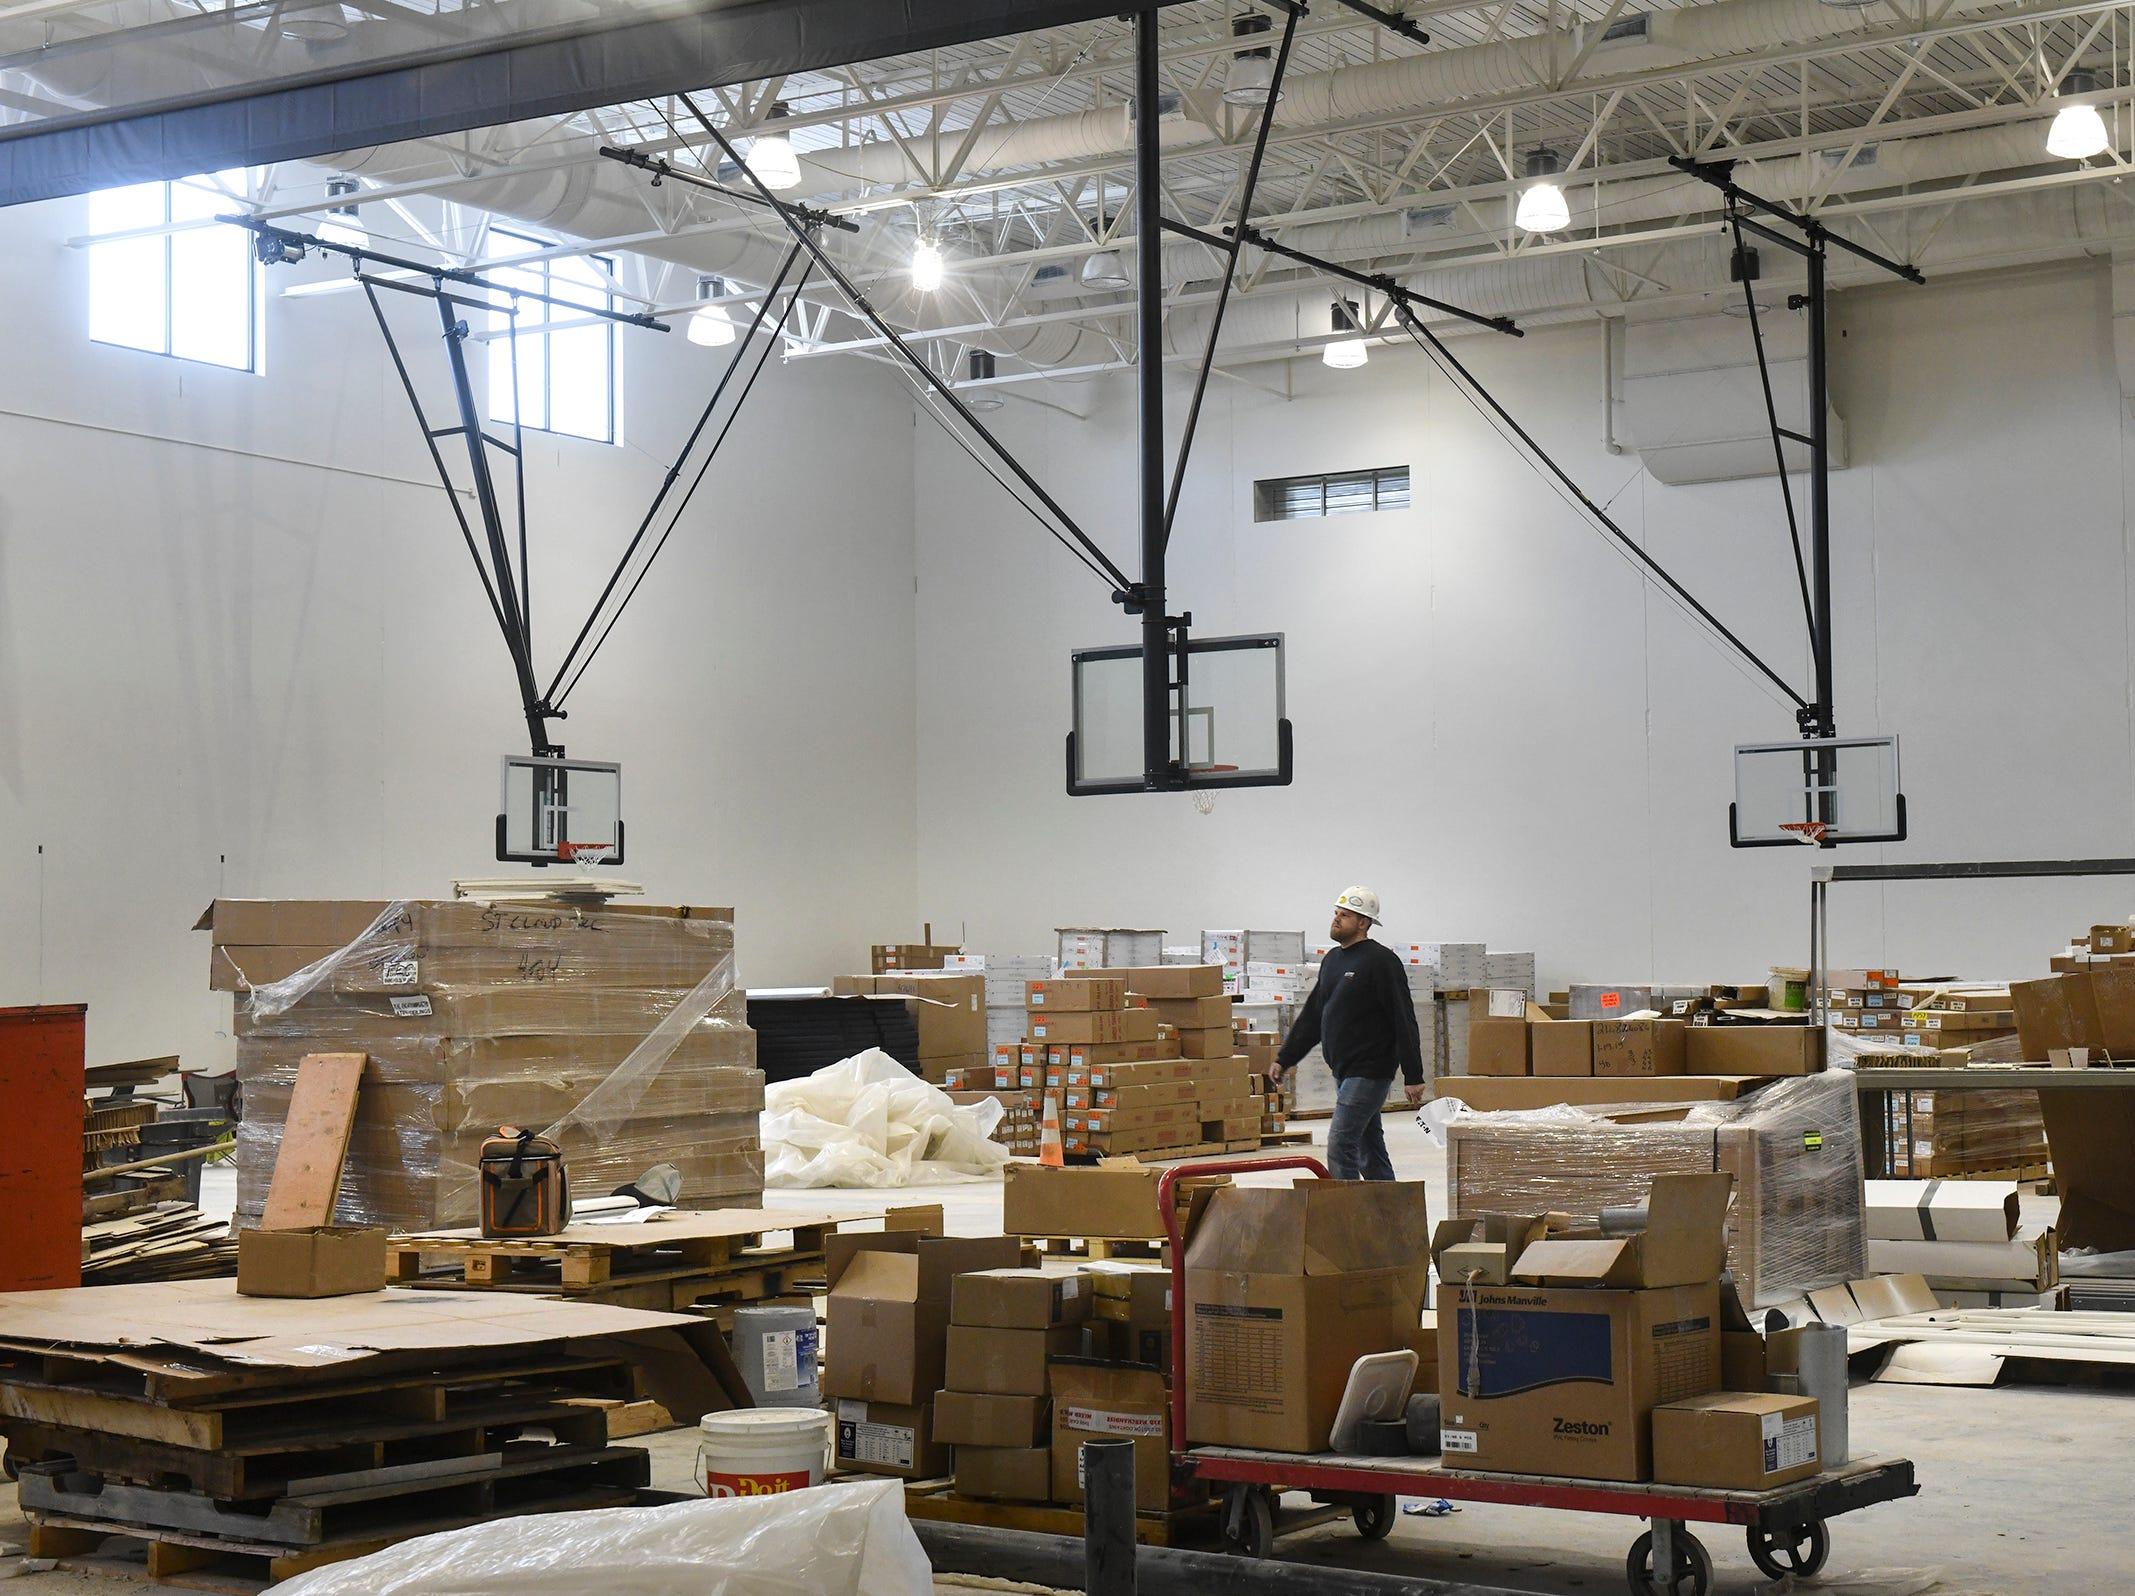 The baskets are in place and materials are staged for installation in the new gymnasium at the Tech High School building under construction Friday, March 15, in St. Cloud.